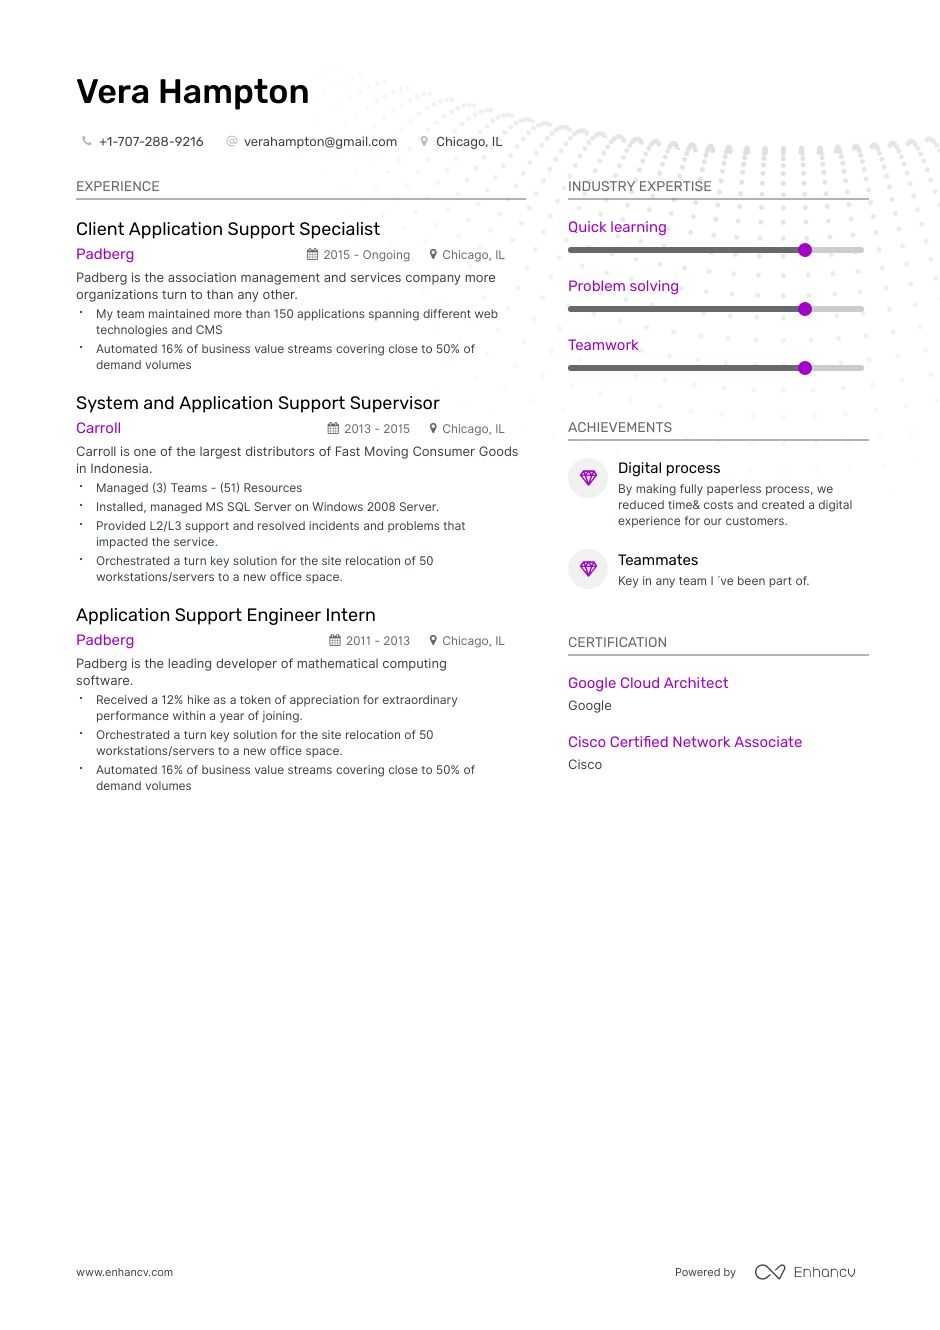 500+ Free Professional Resume Examples and Samples for 2019